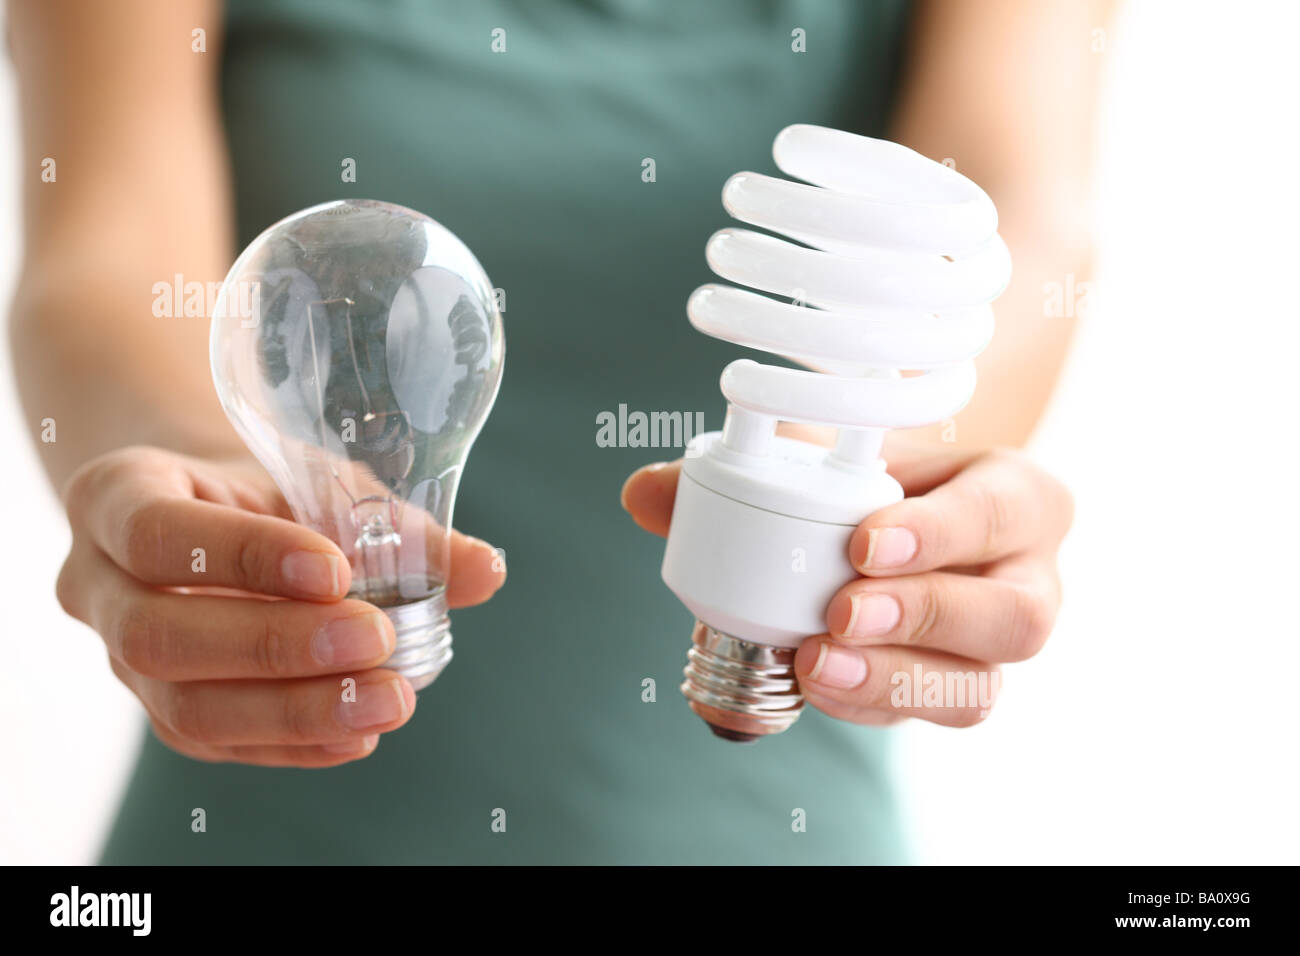 Hands holding traditional and energy efficient light bulbs - Stock Image